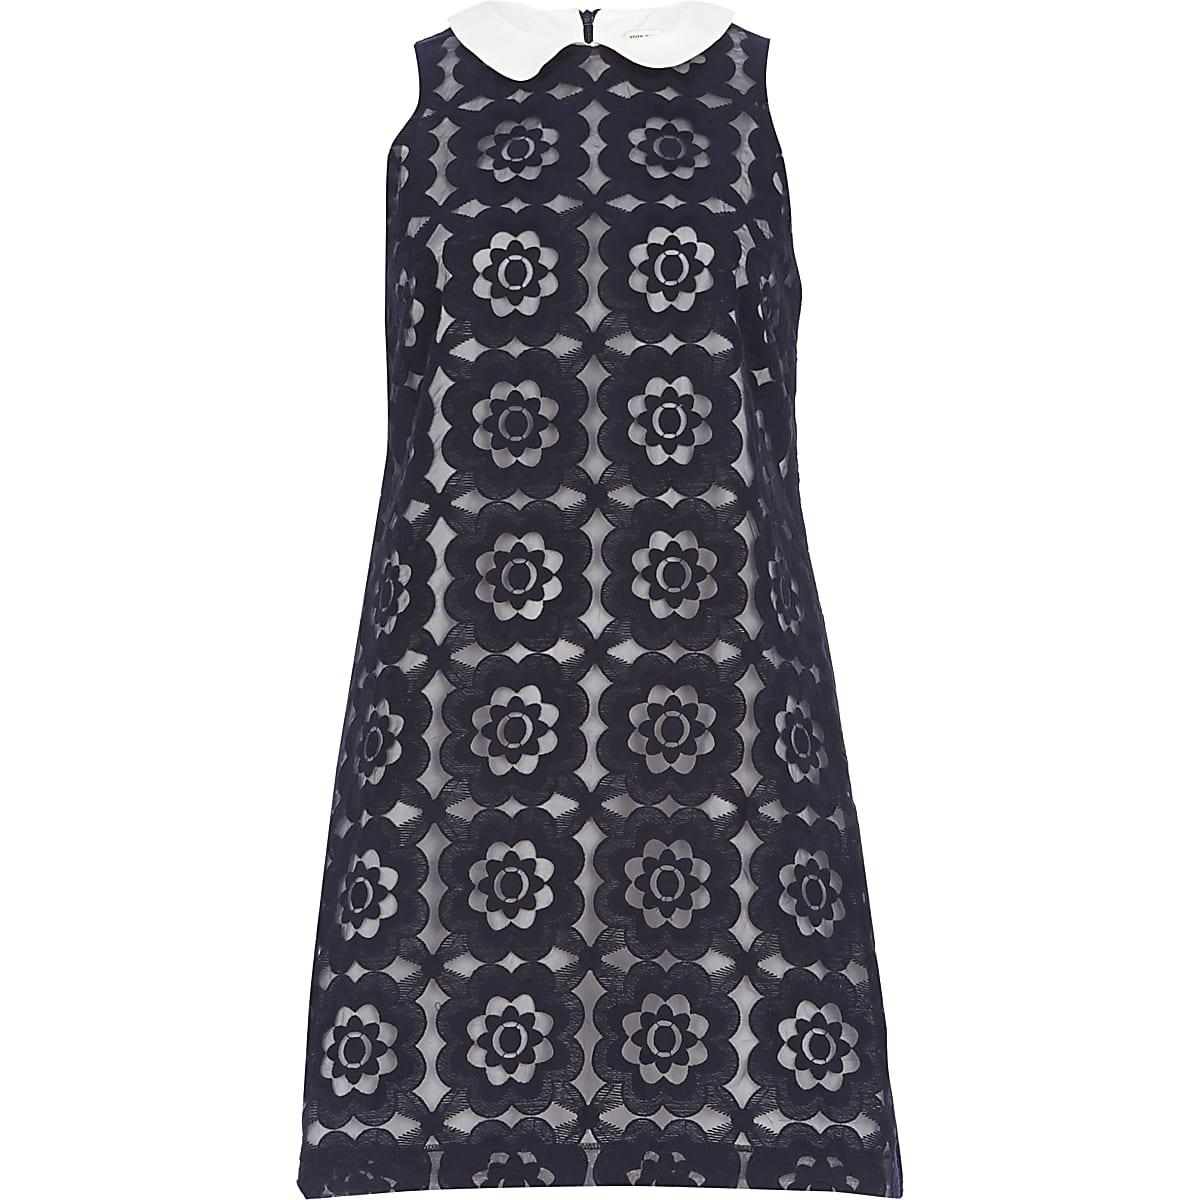 Navy blue contrast collar shift dress